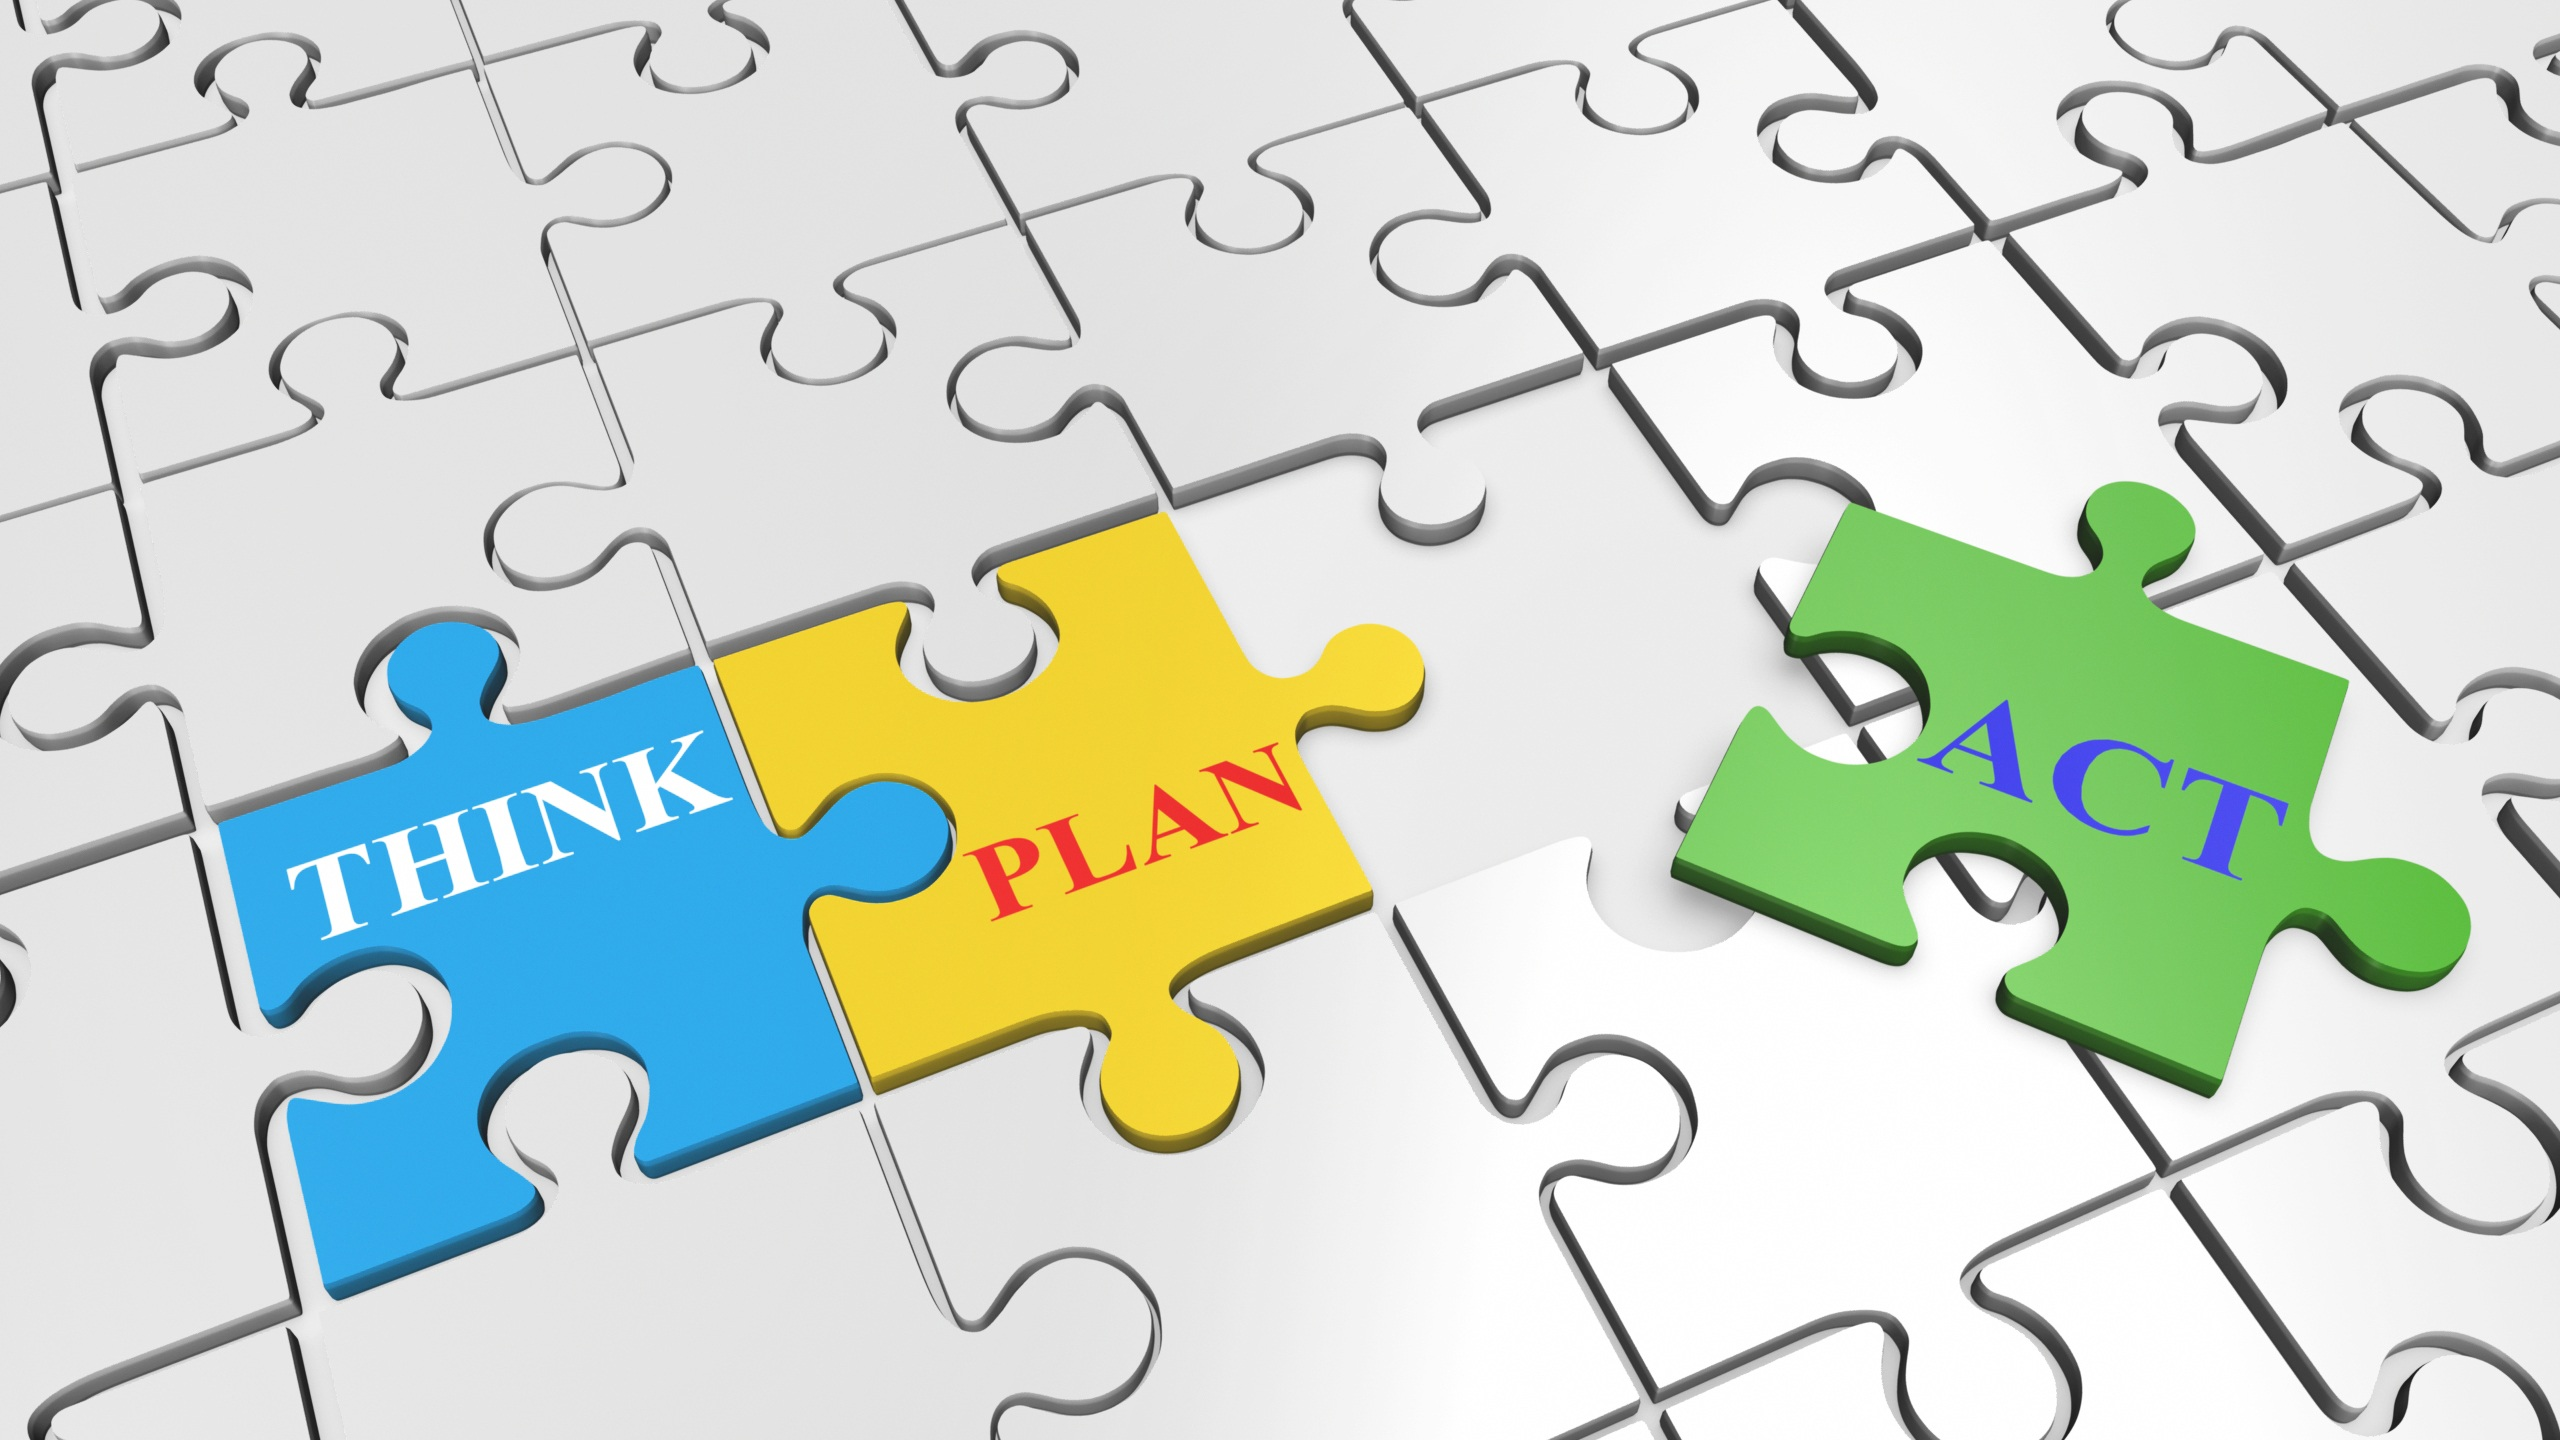 think plan act puzzle pieces